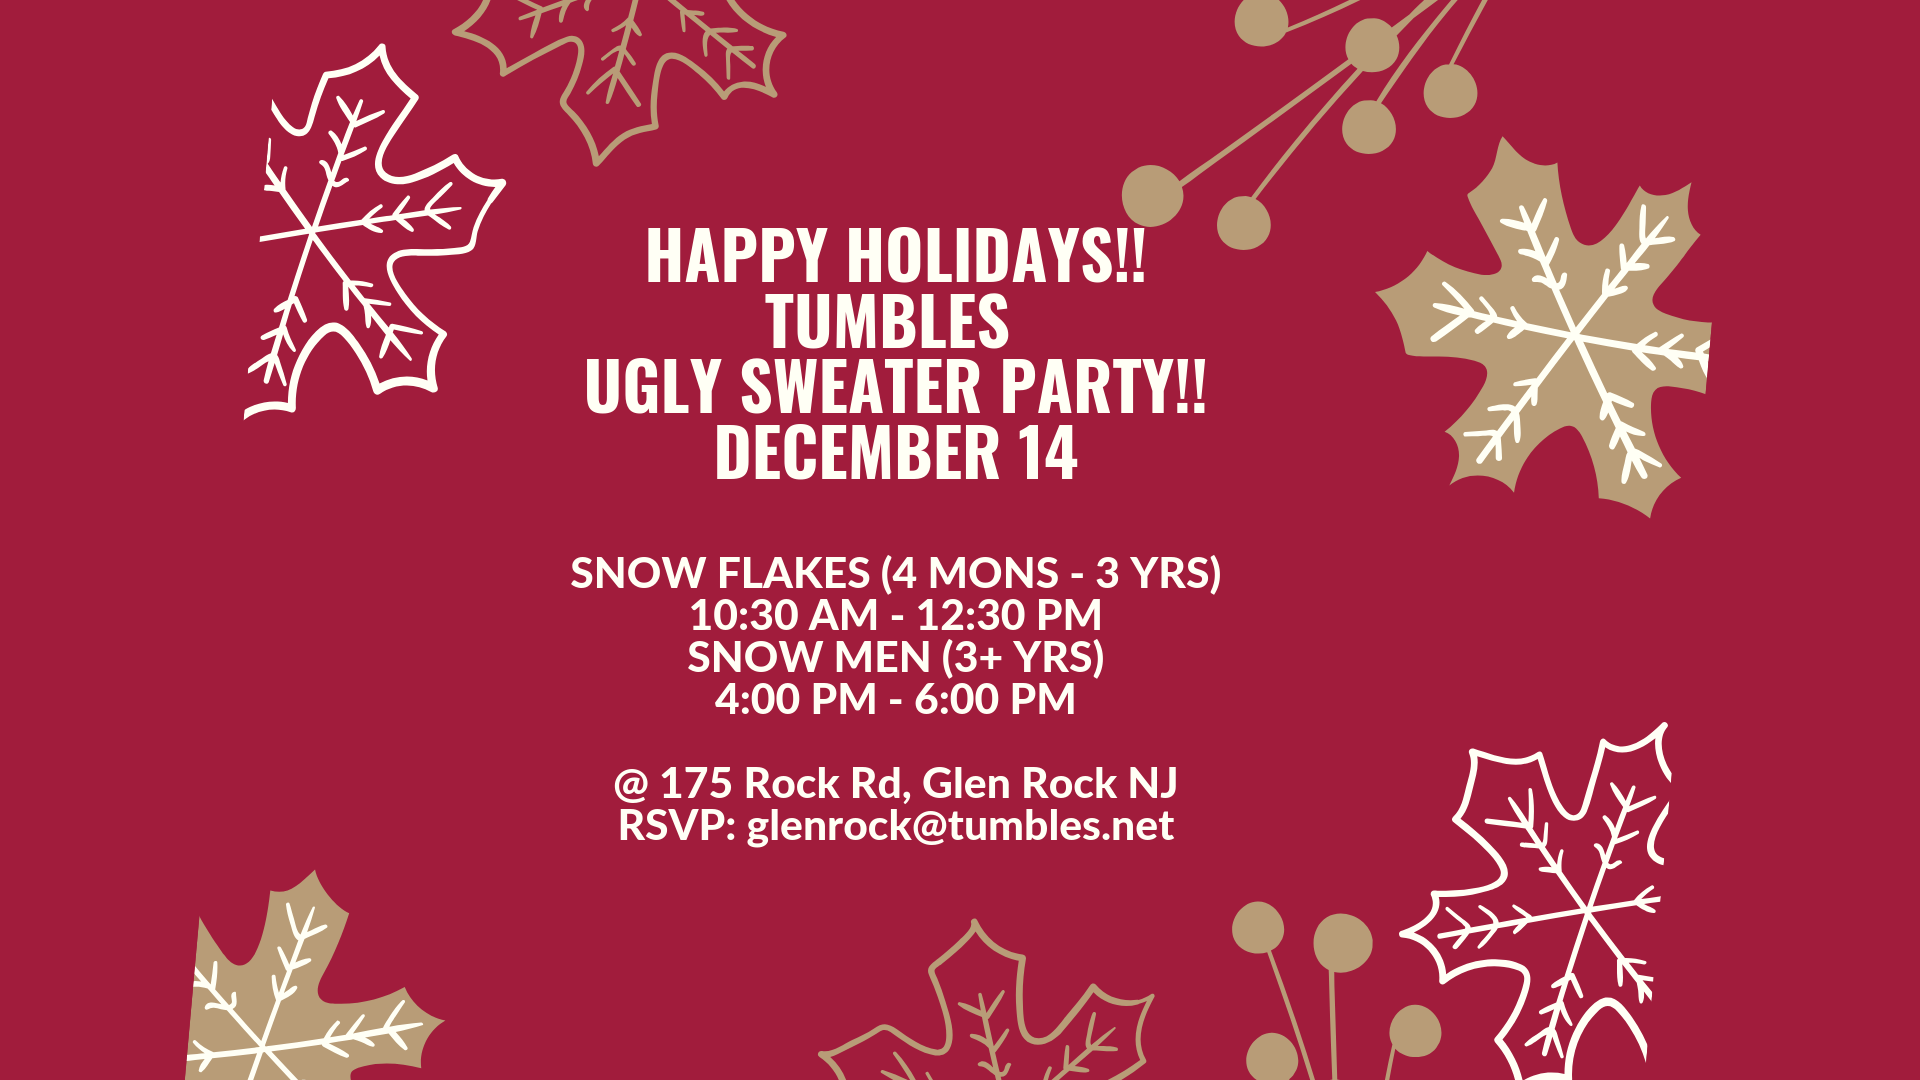 Tumbles Ugly Sweater Holiday Party!